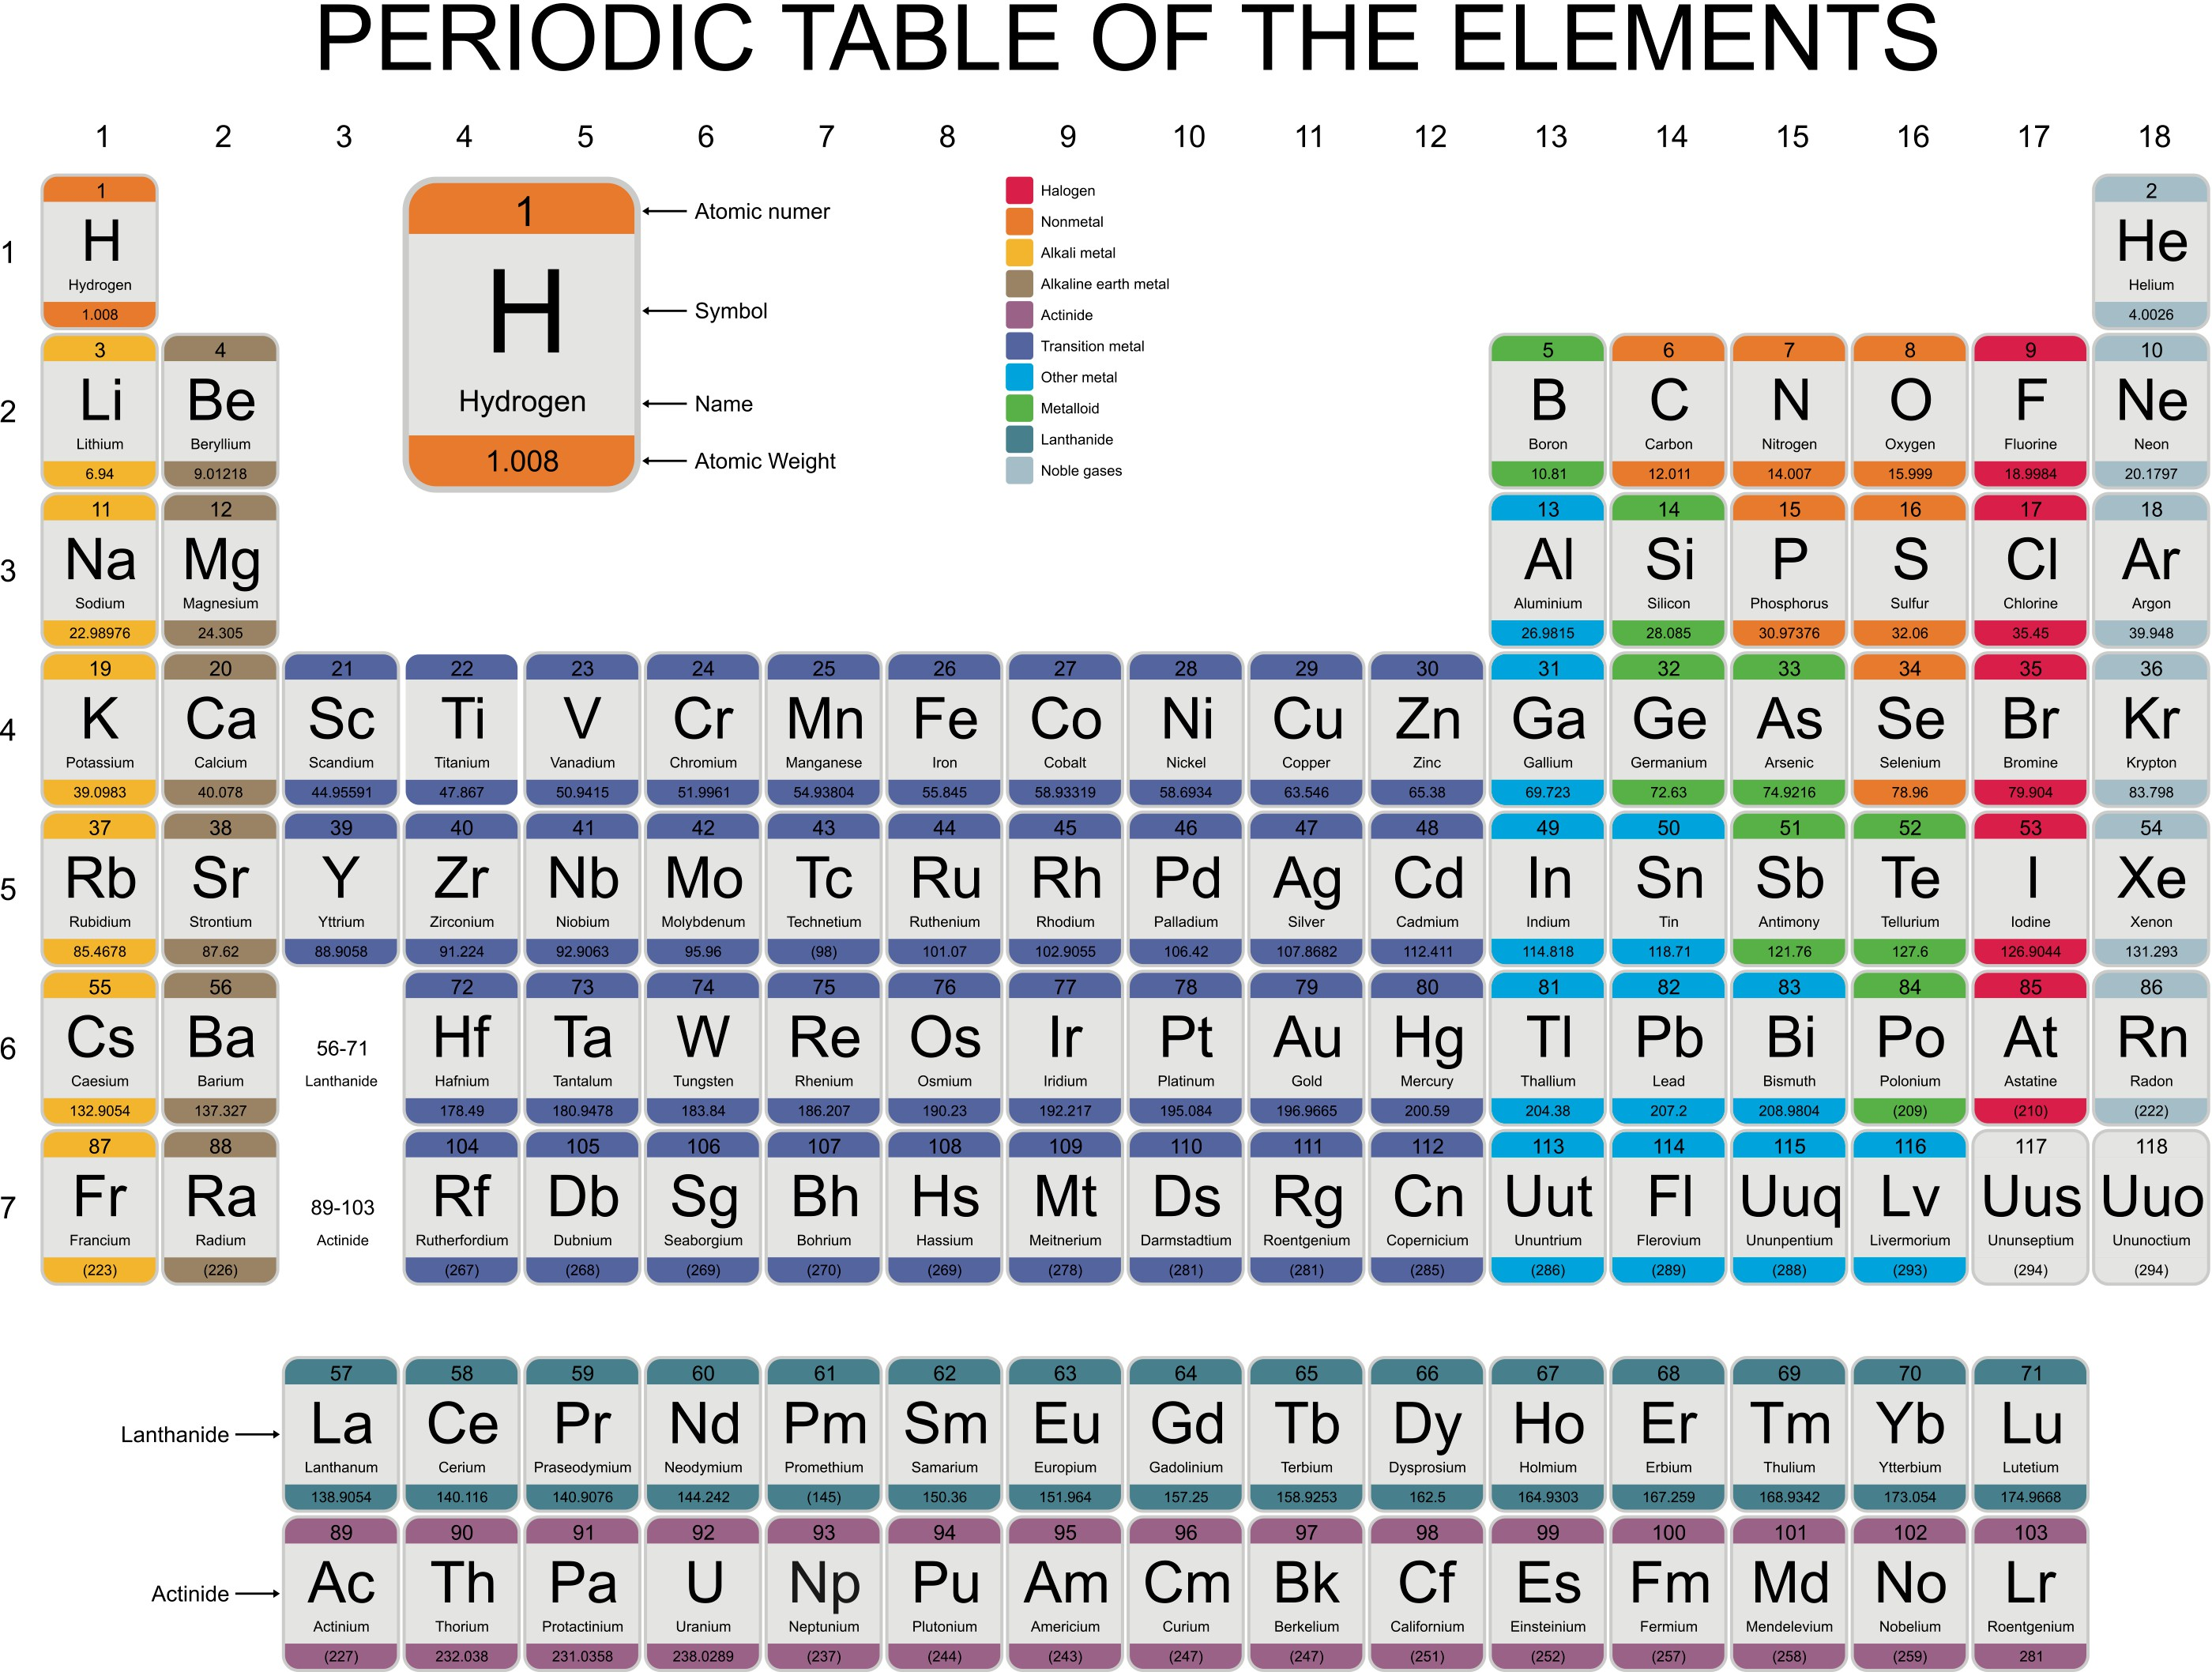 Periodic table review worksheet images periodic table images 300700323191 pythagoras theorem problems worksheet pdf expanding addition with regrouping worksheets word getting to know your gamestrikefo Images